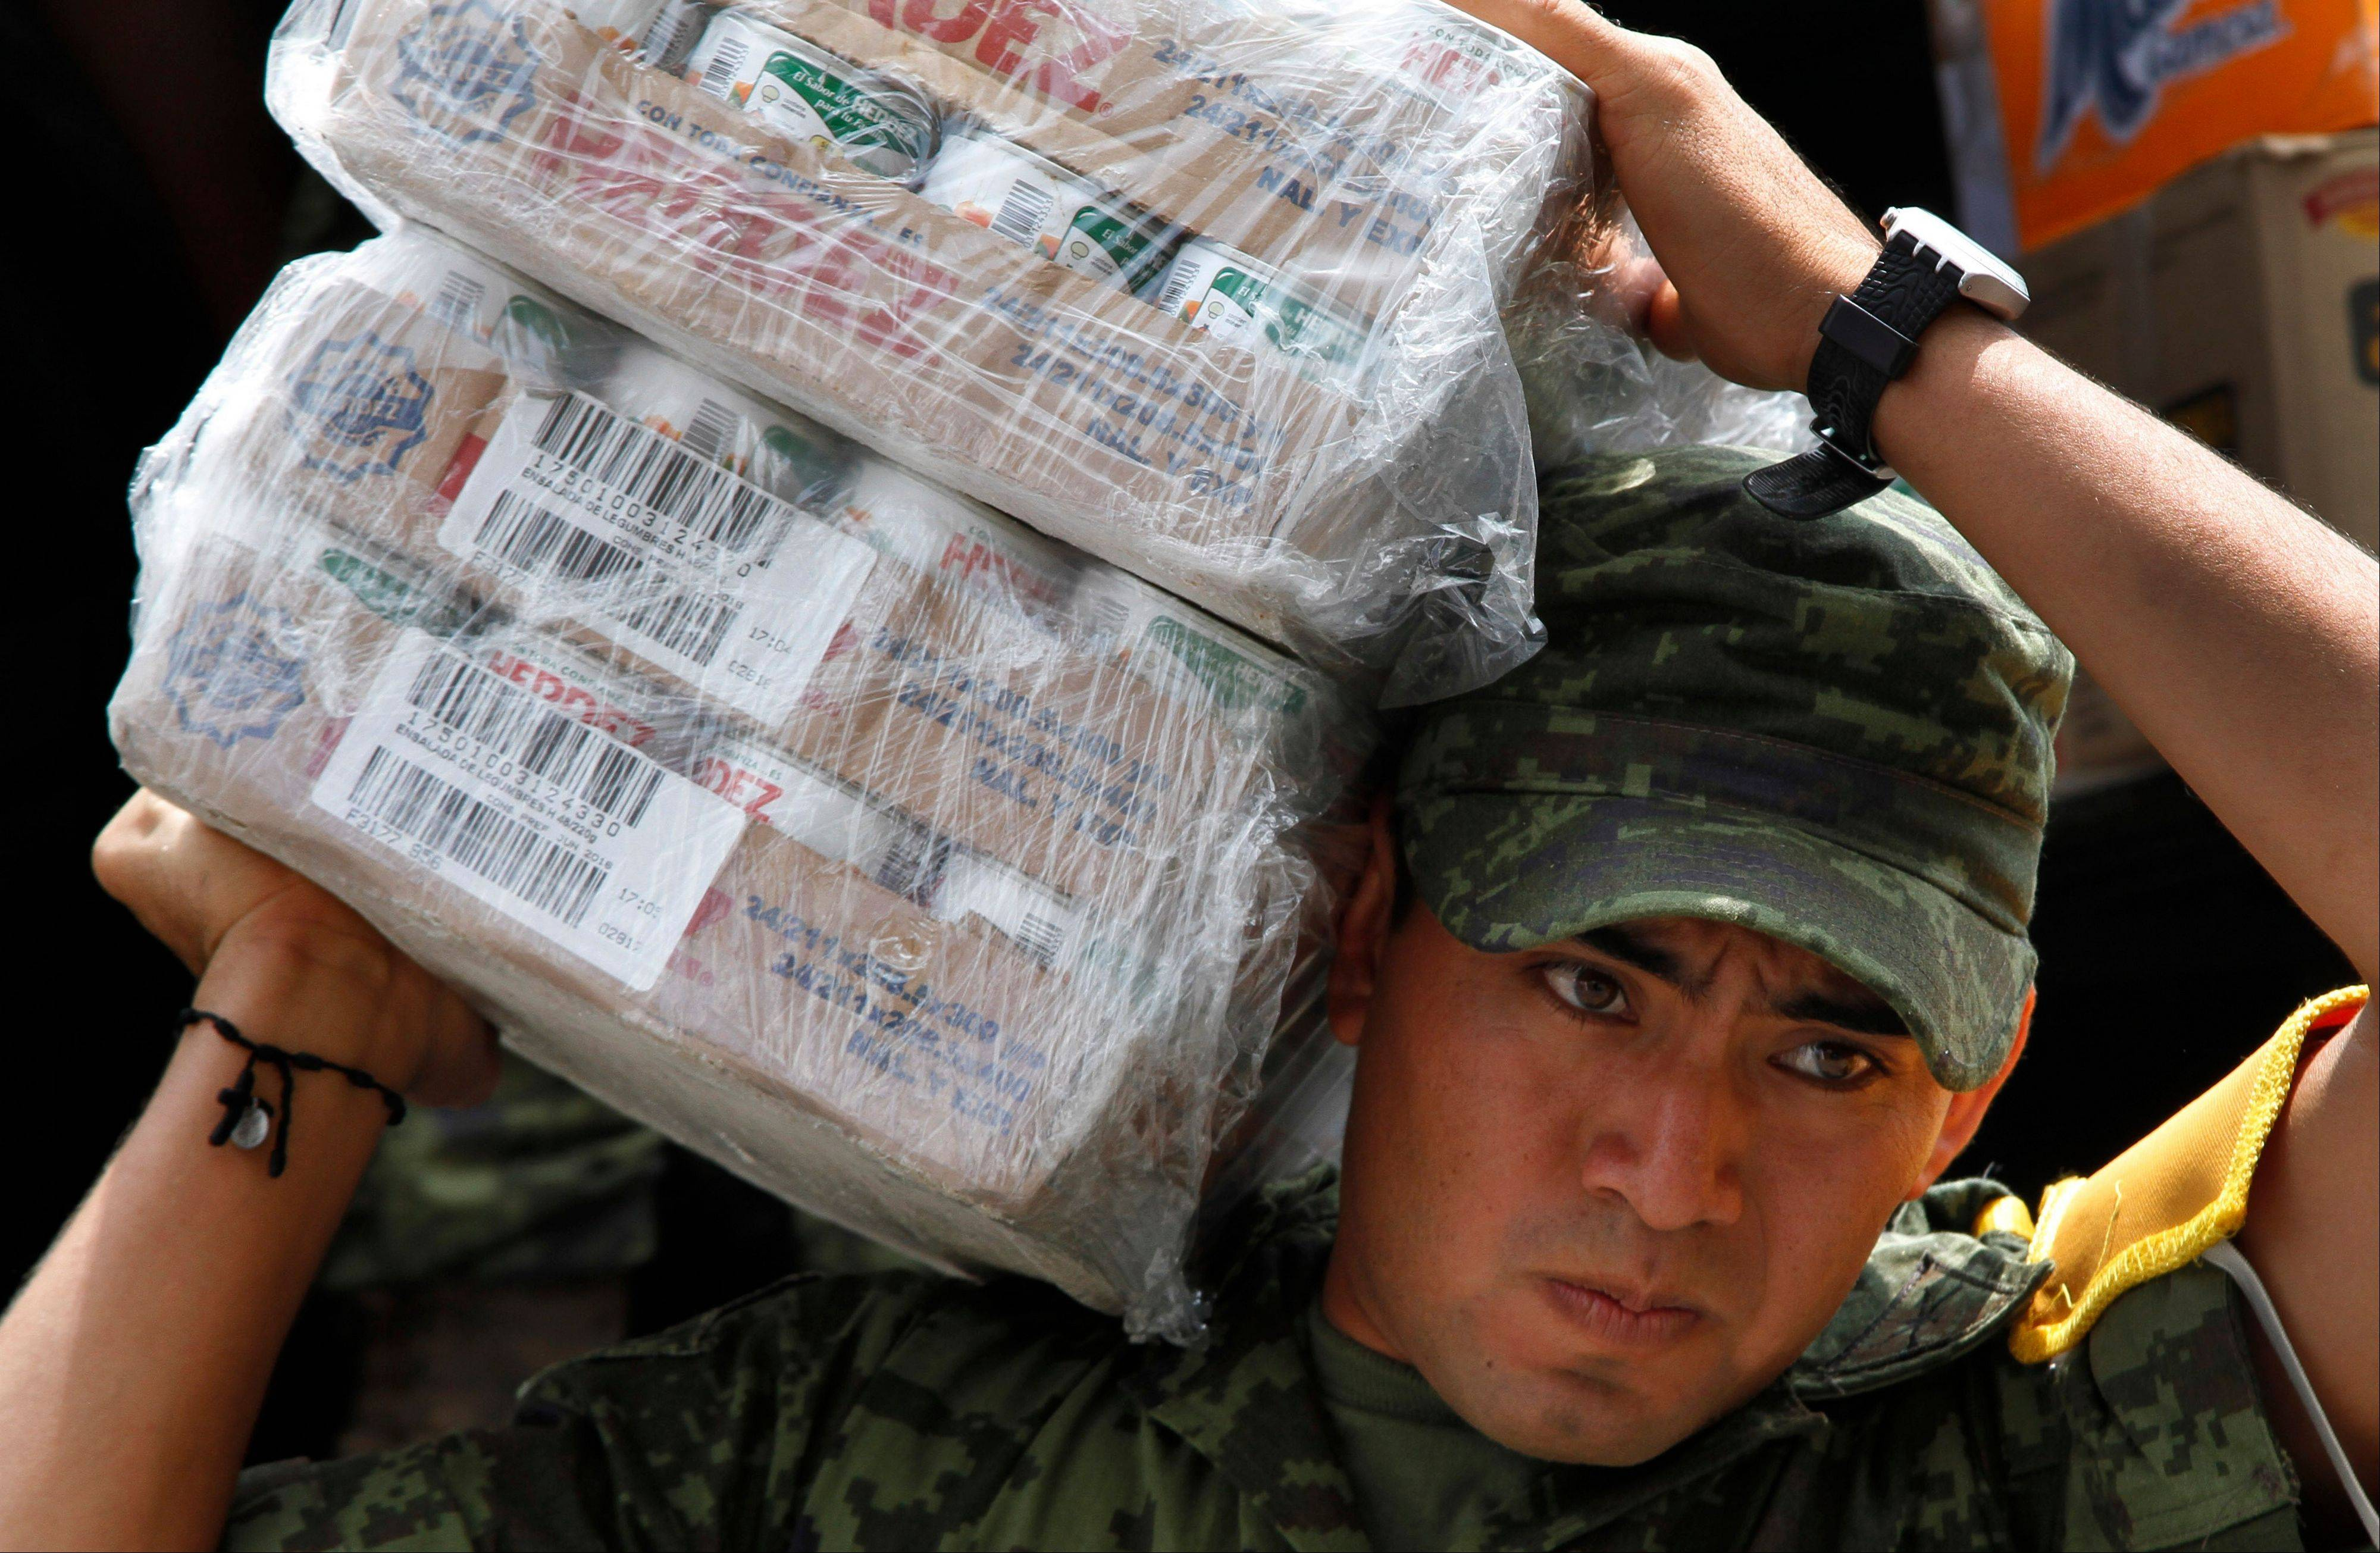 A soldier carries cartons of canned vegetables Friday to a waiting vehicle as part of the humanitarian aid bound for storm victims of Tropical Storm Manuel, in the Zocalo, Mexico City�s main plaza.